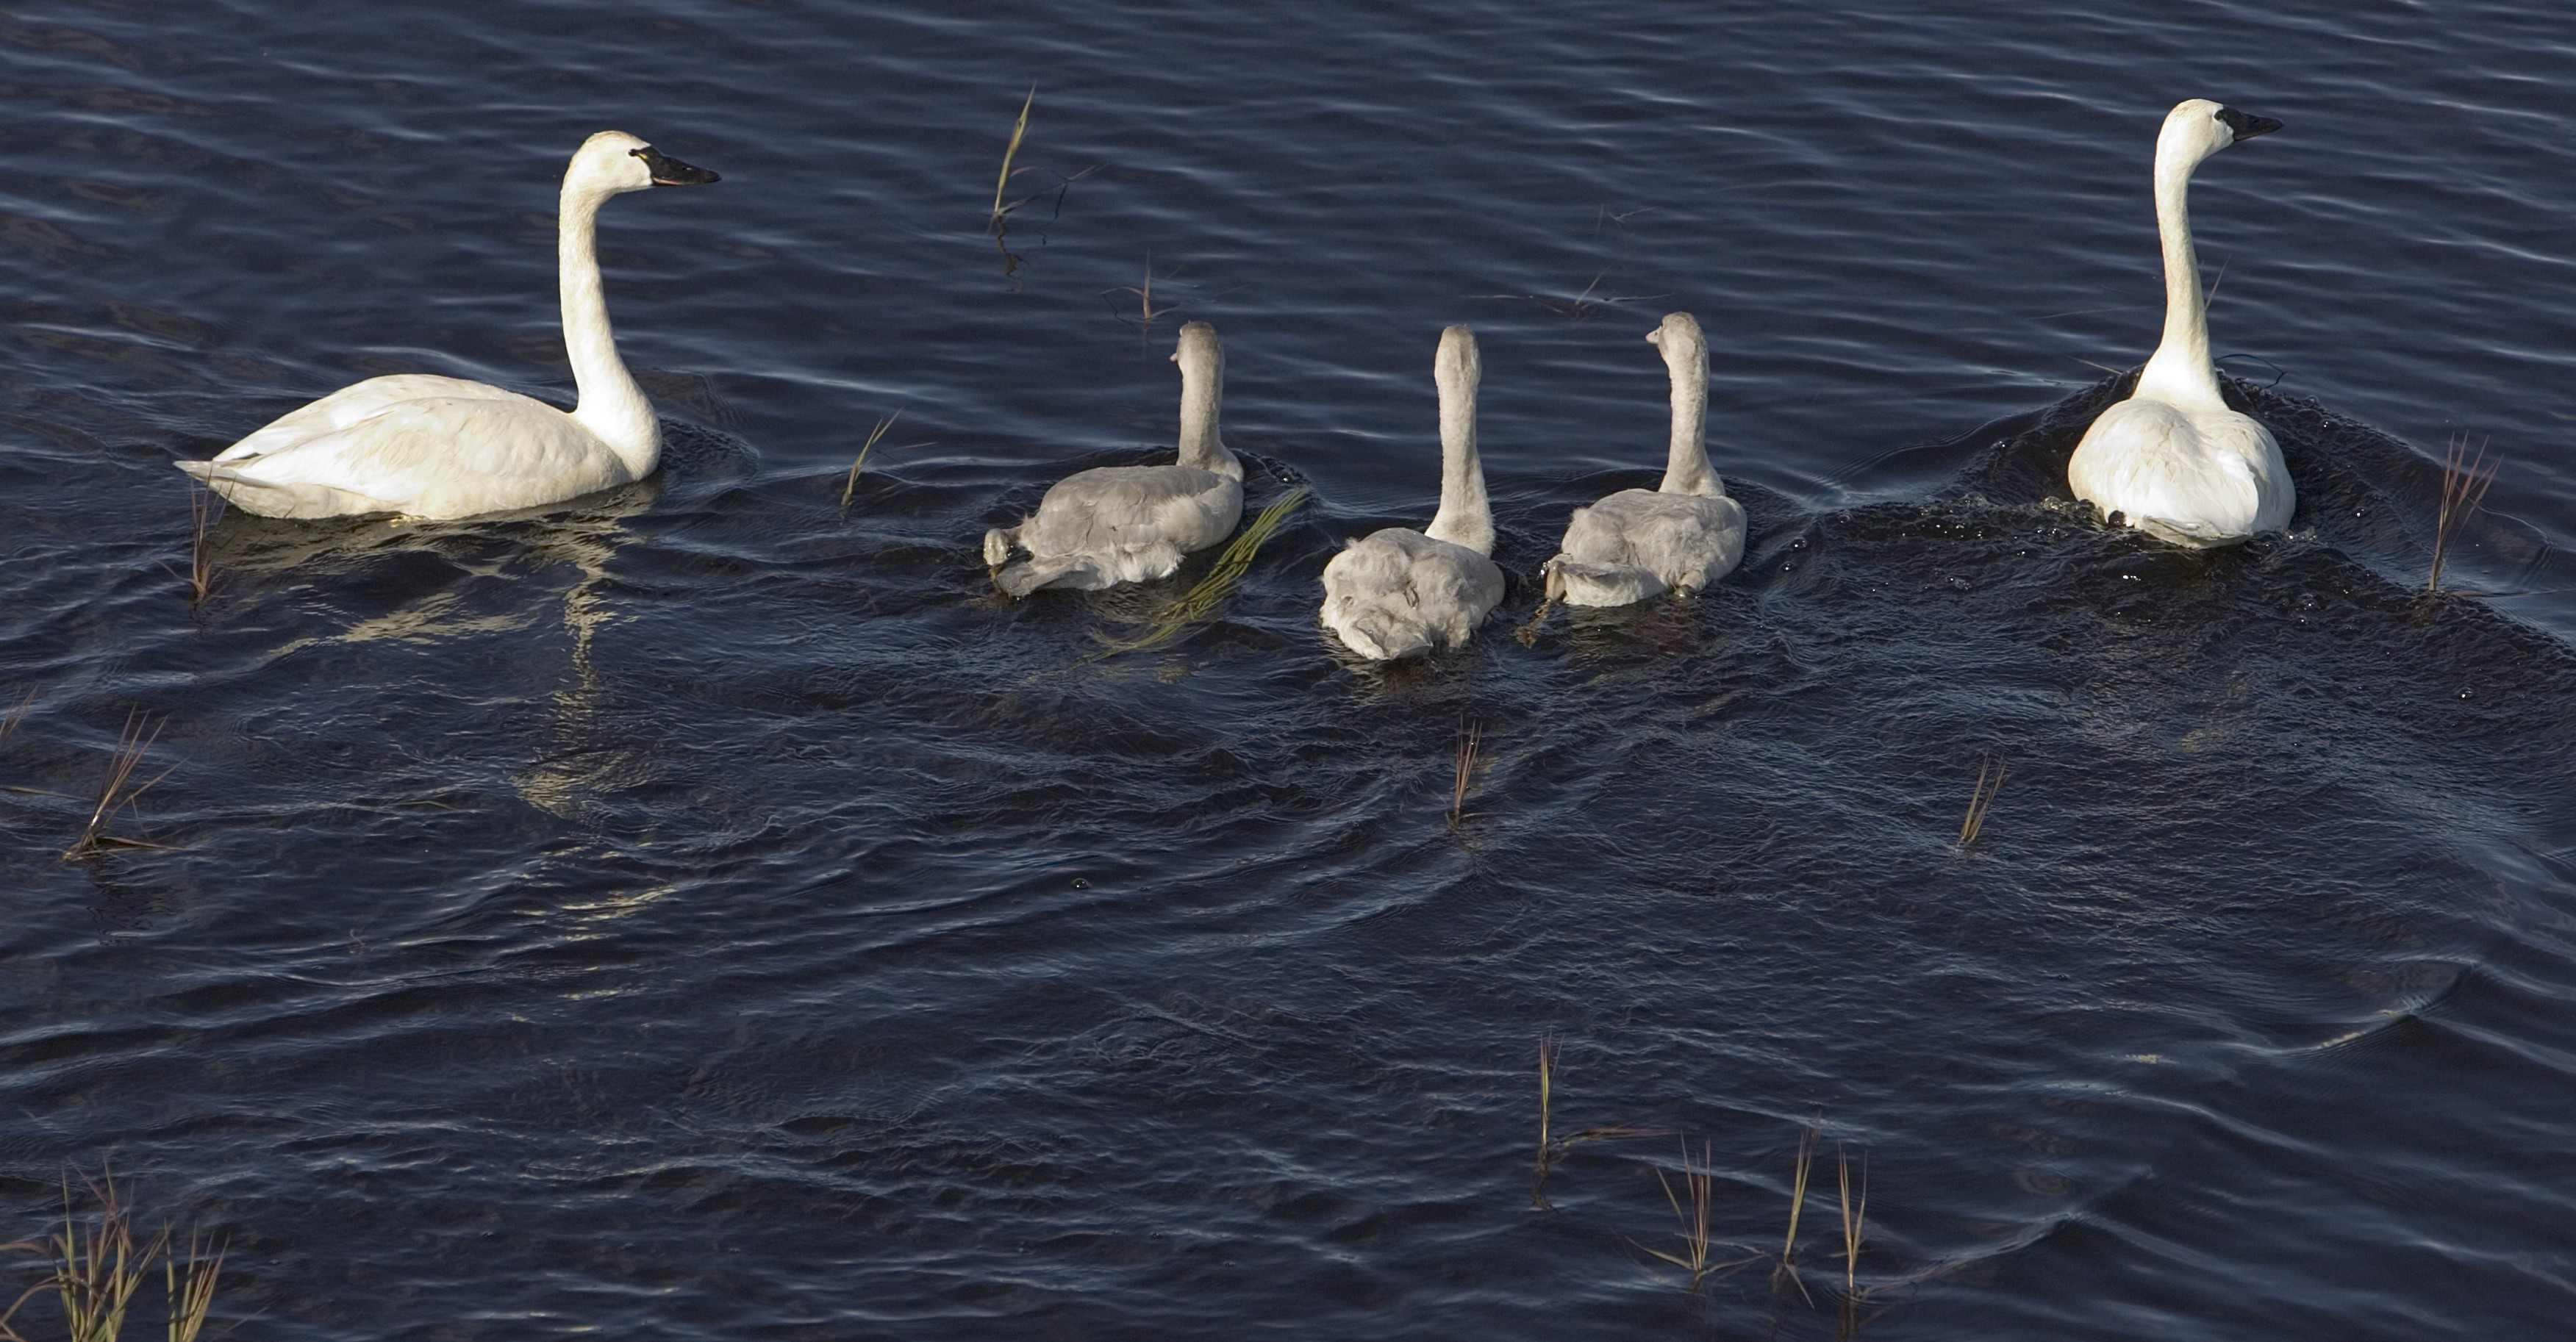 2 adult swans with three grey babies in between swimming in the water.